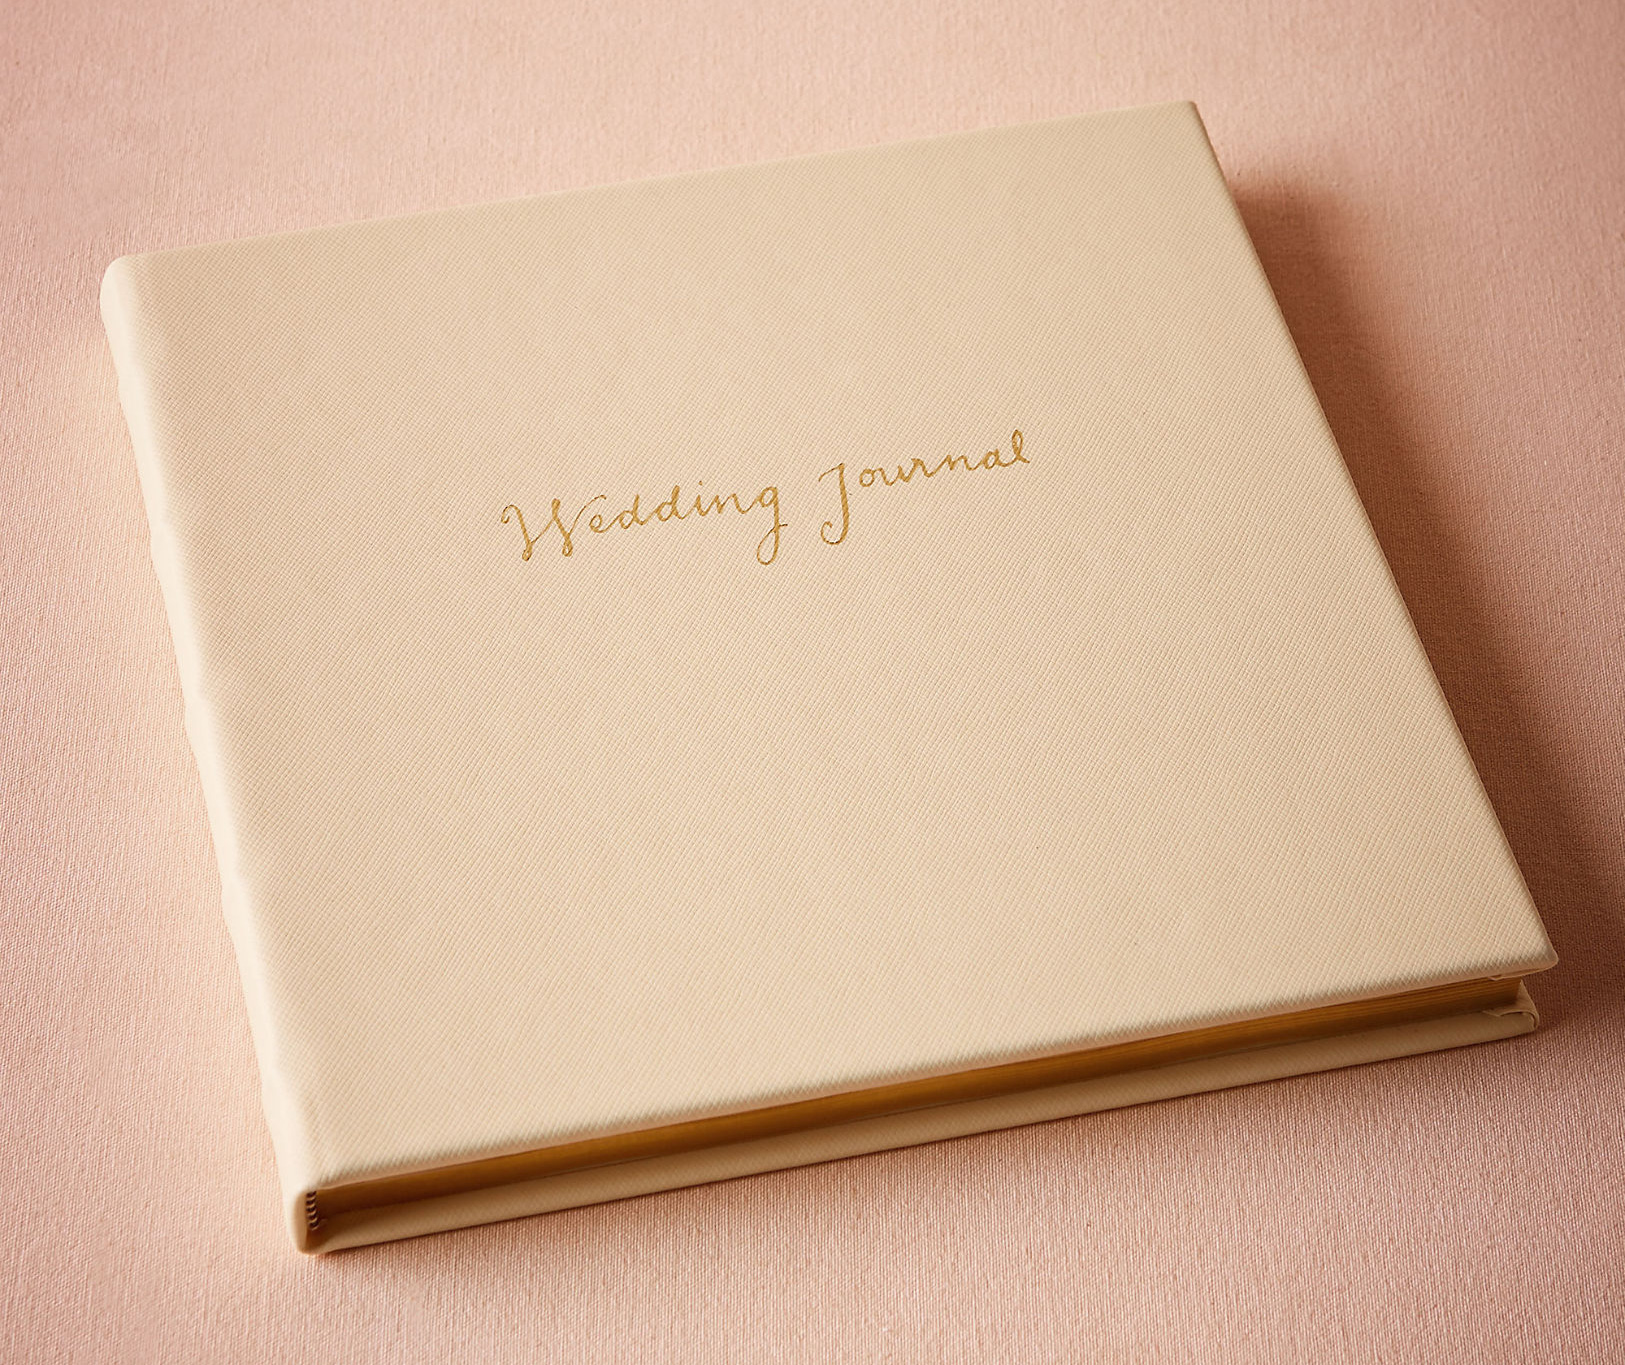 Wedding Journal from BHLDN for newly engaged couples gift ideas